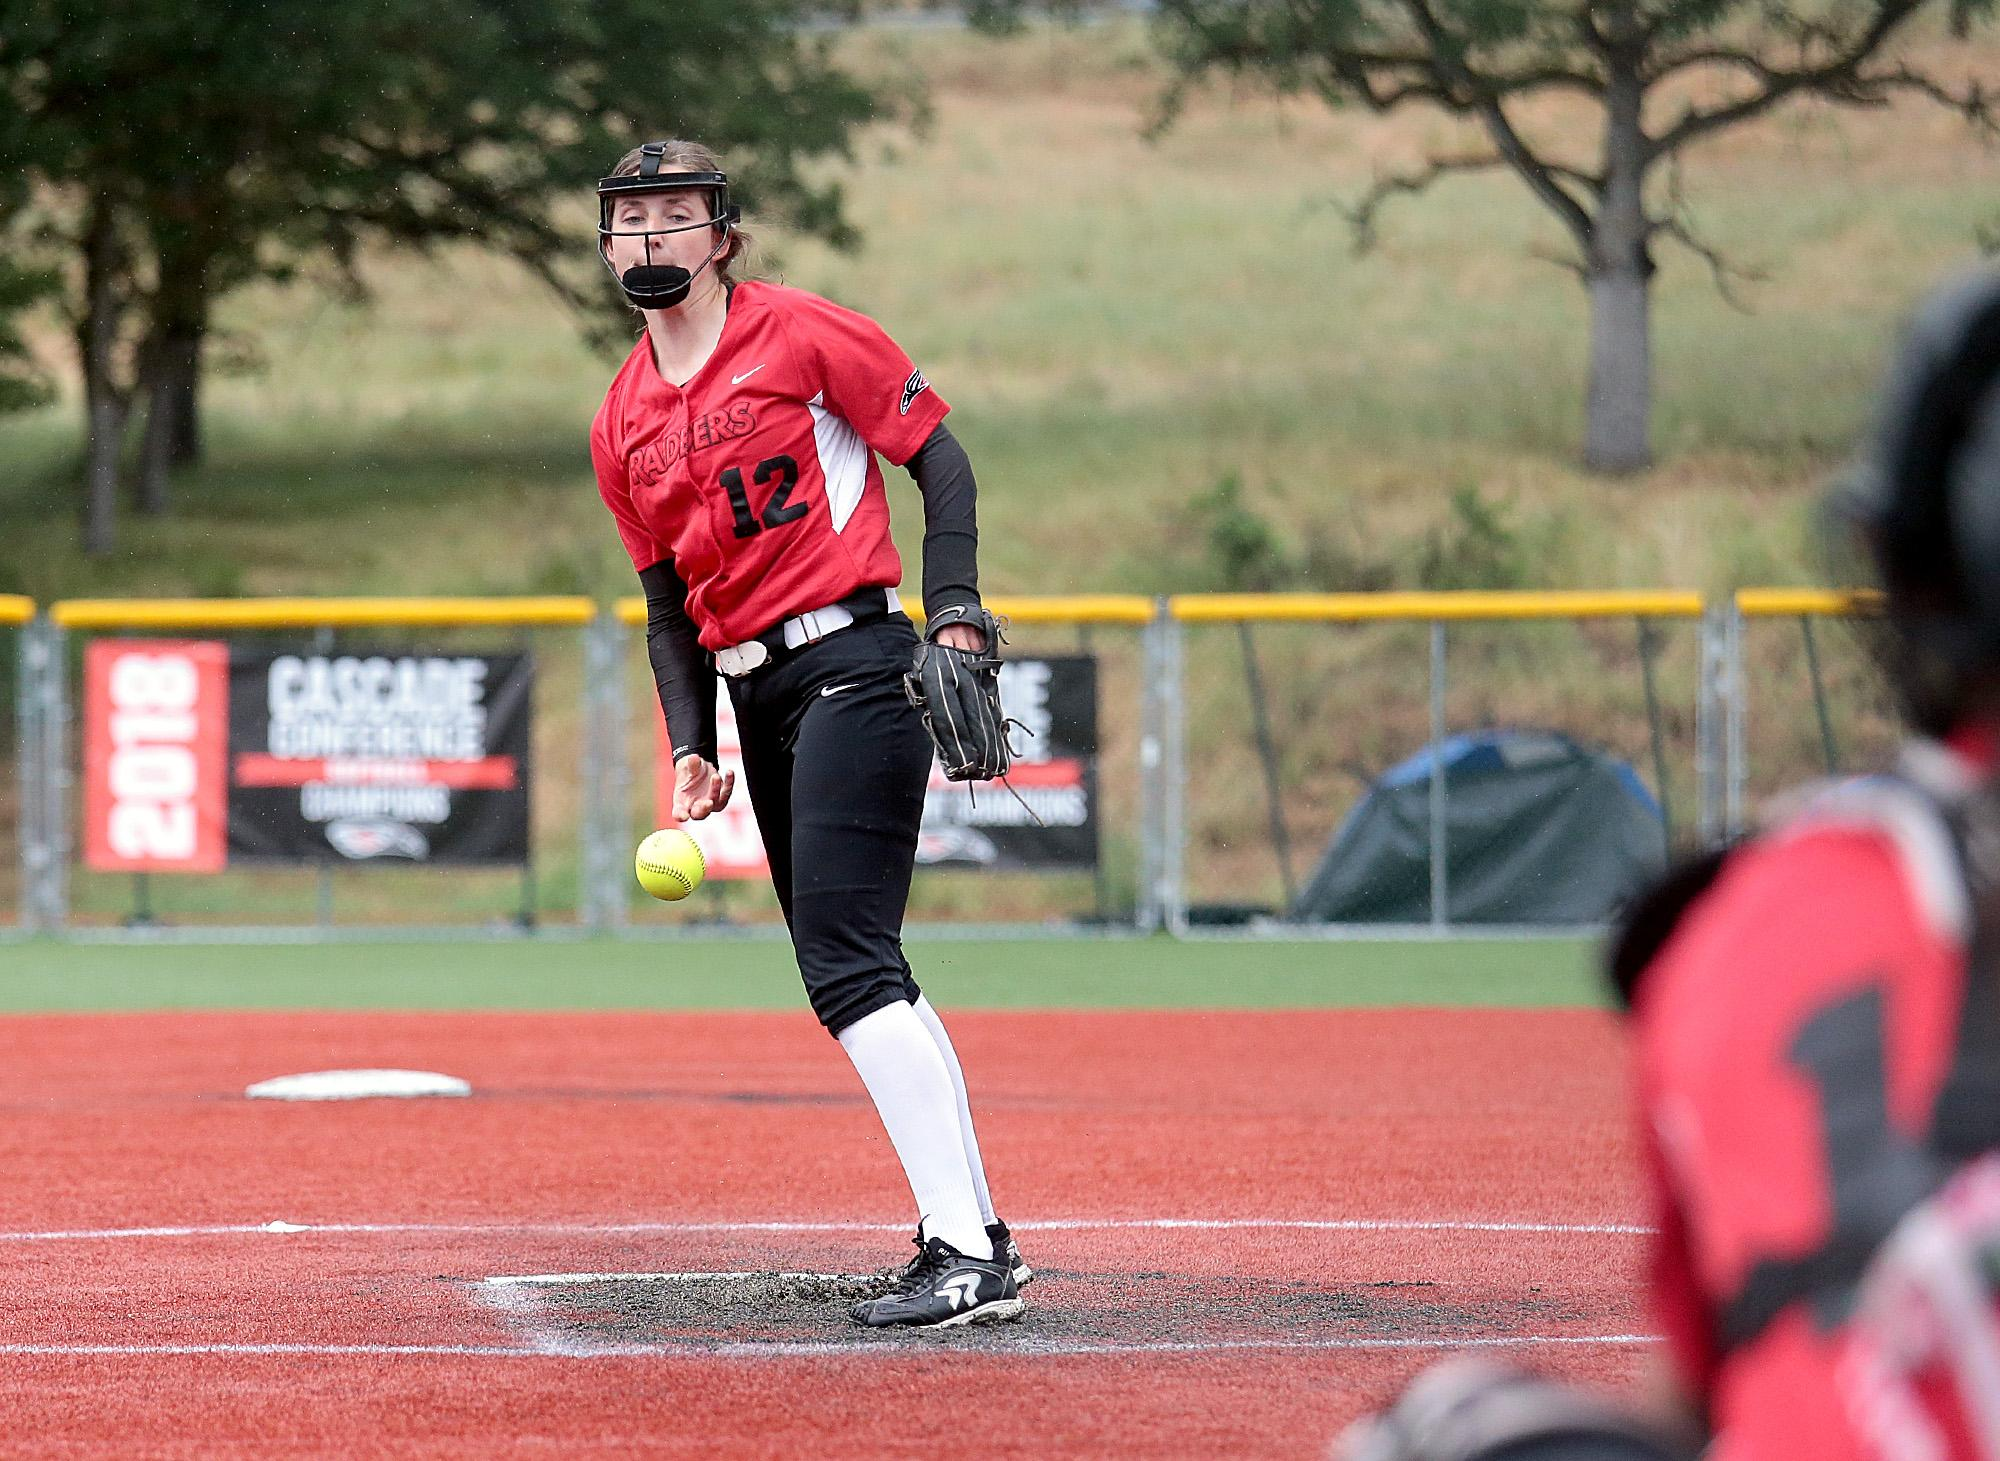 Larry Stauth Jr./For the Daily TidingsSouthern Oregon University freshman right-hander Allie Hancock allowed seven hits and three runs while pitching into the fifth inning against St. Francis at U.S. Cellular Community Park on Wednesday.